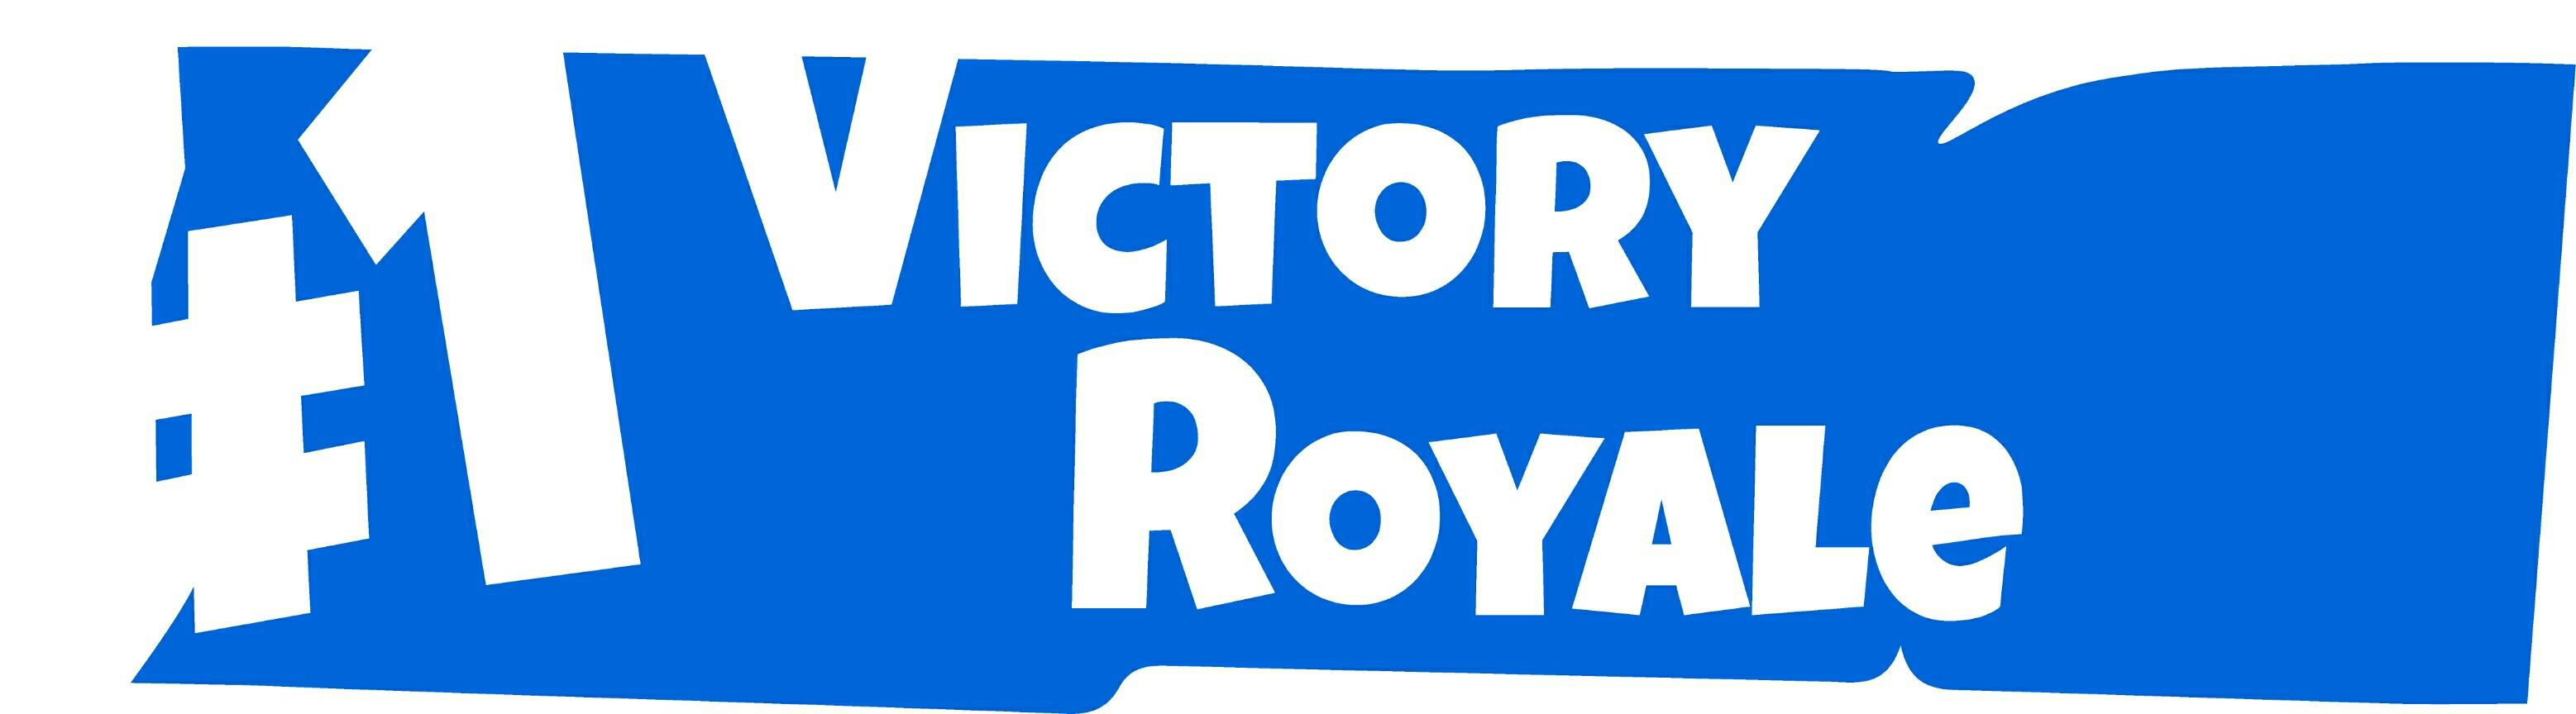 Pin On Fortnite Clipart Svg Png Silhouette Characters